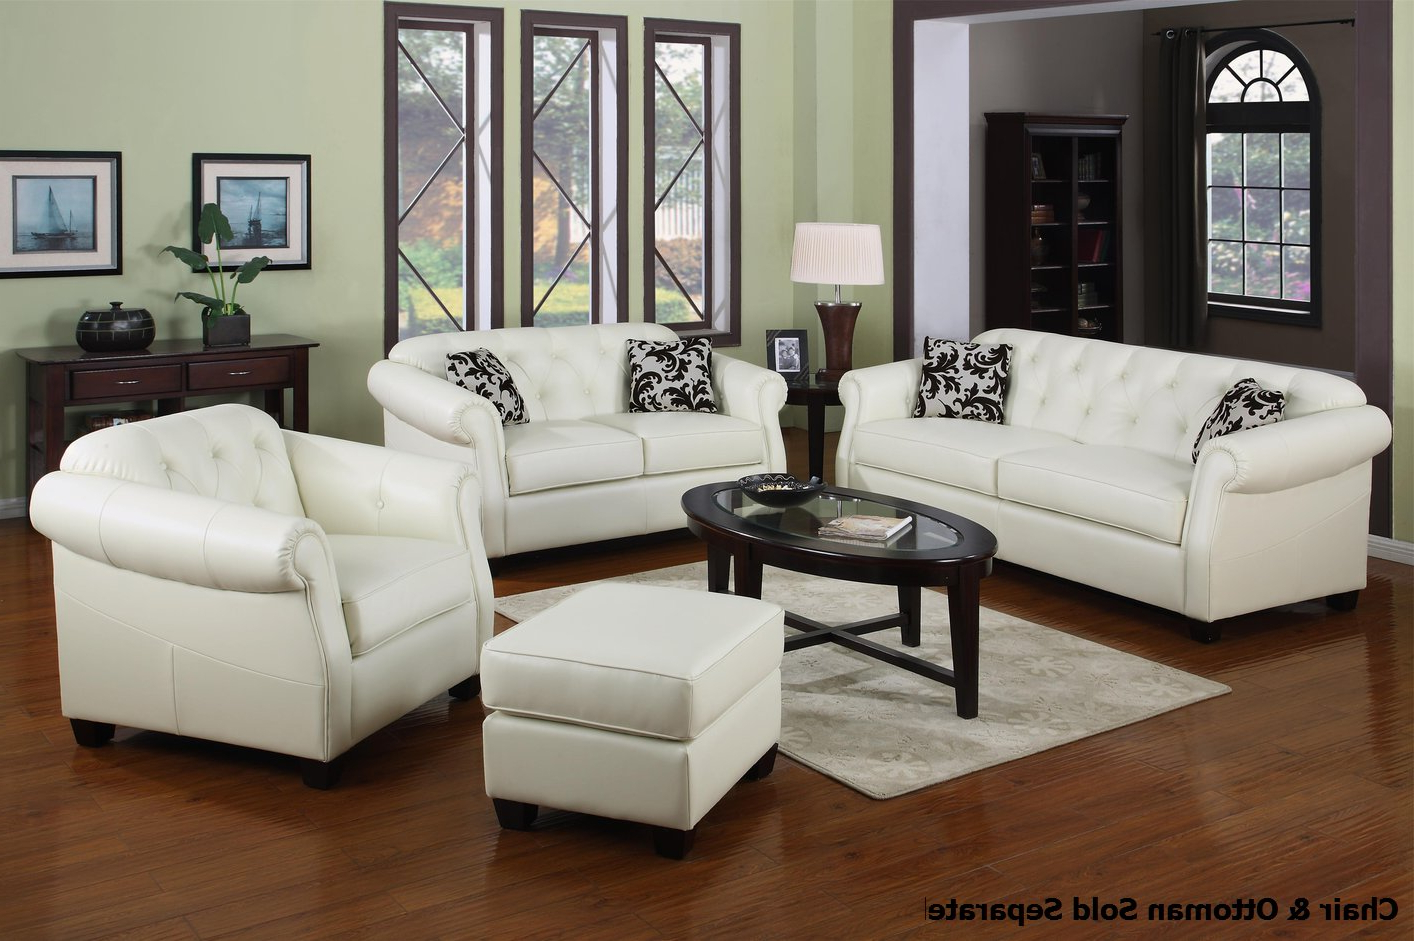 Sofa Loveseat And Chairs Regarding Trendy Kristyna White Leather Sofa And Loveseat Set – Steal A Sofa (View 15 of 20)